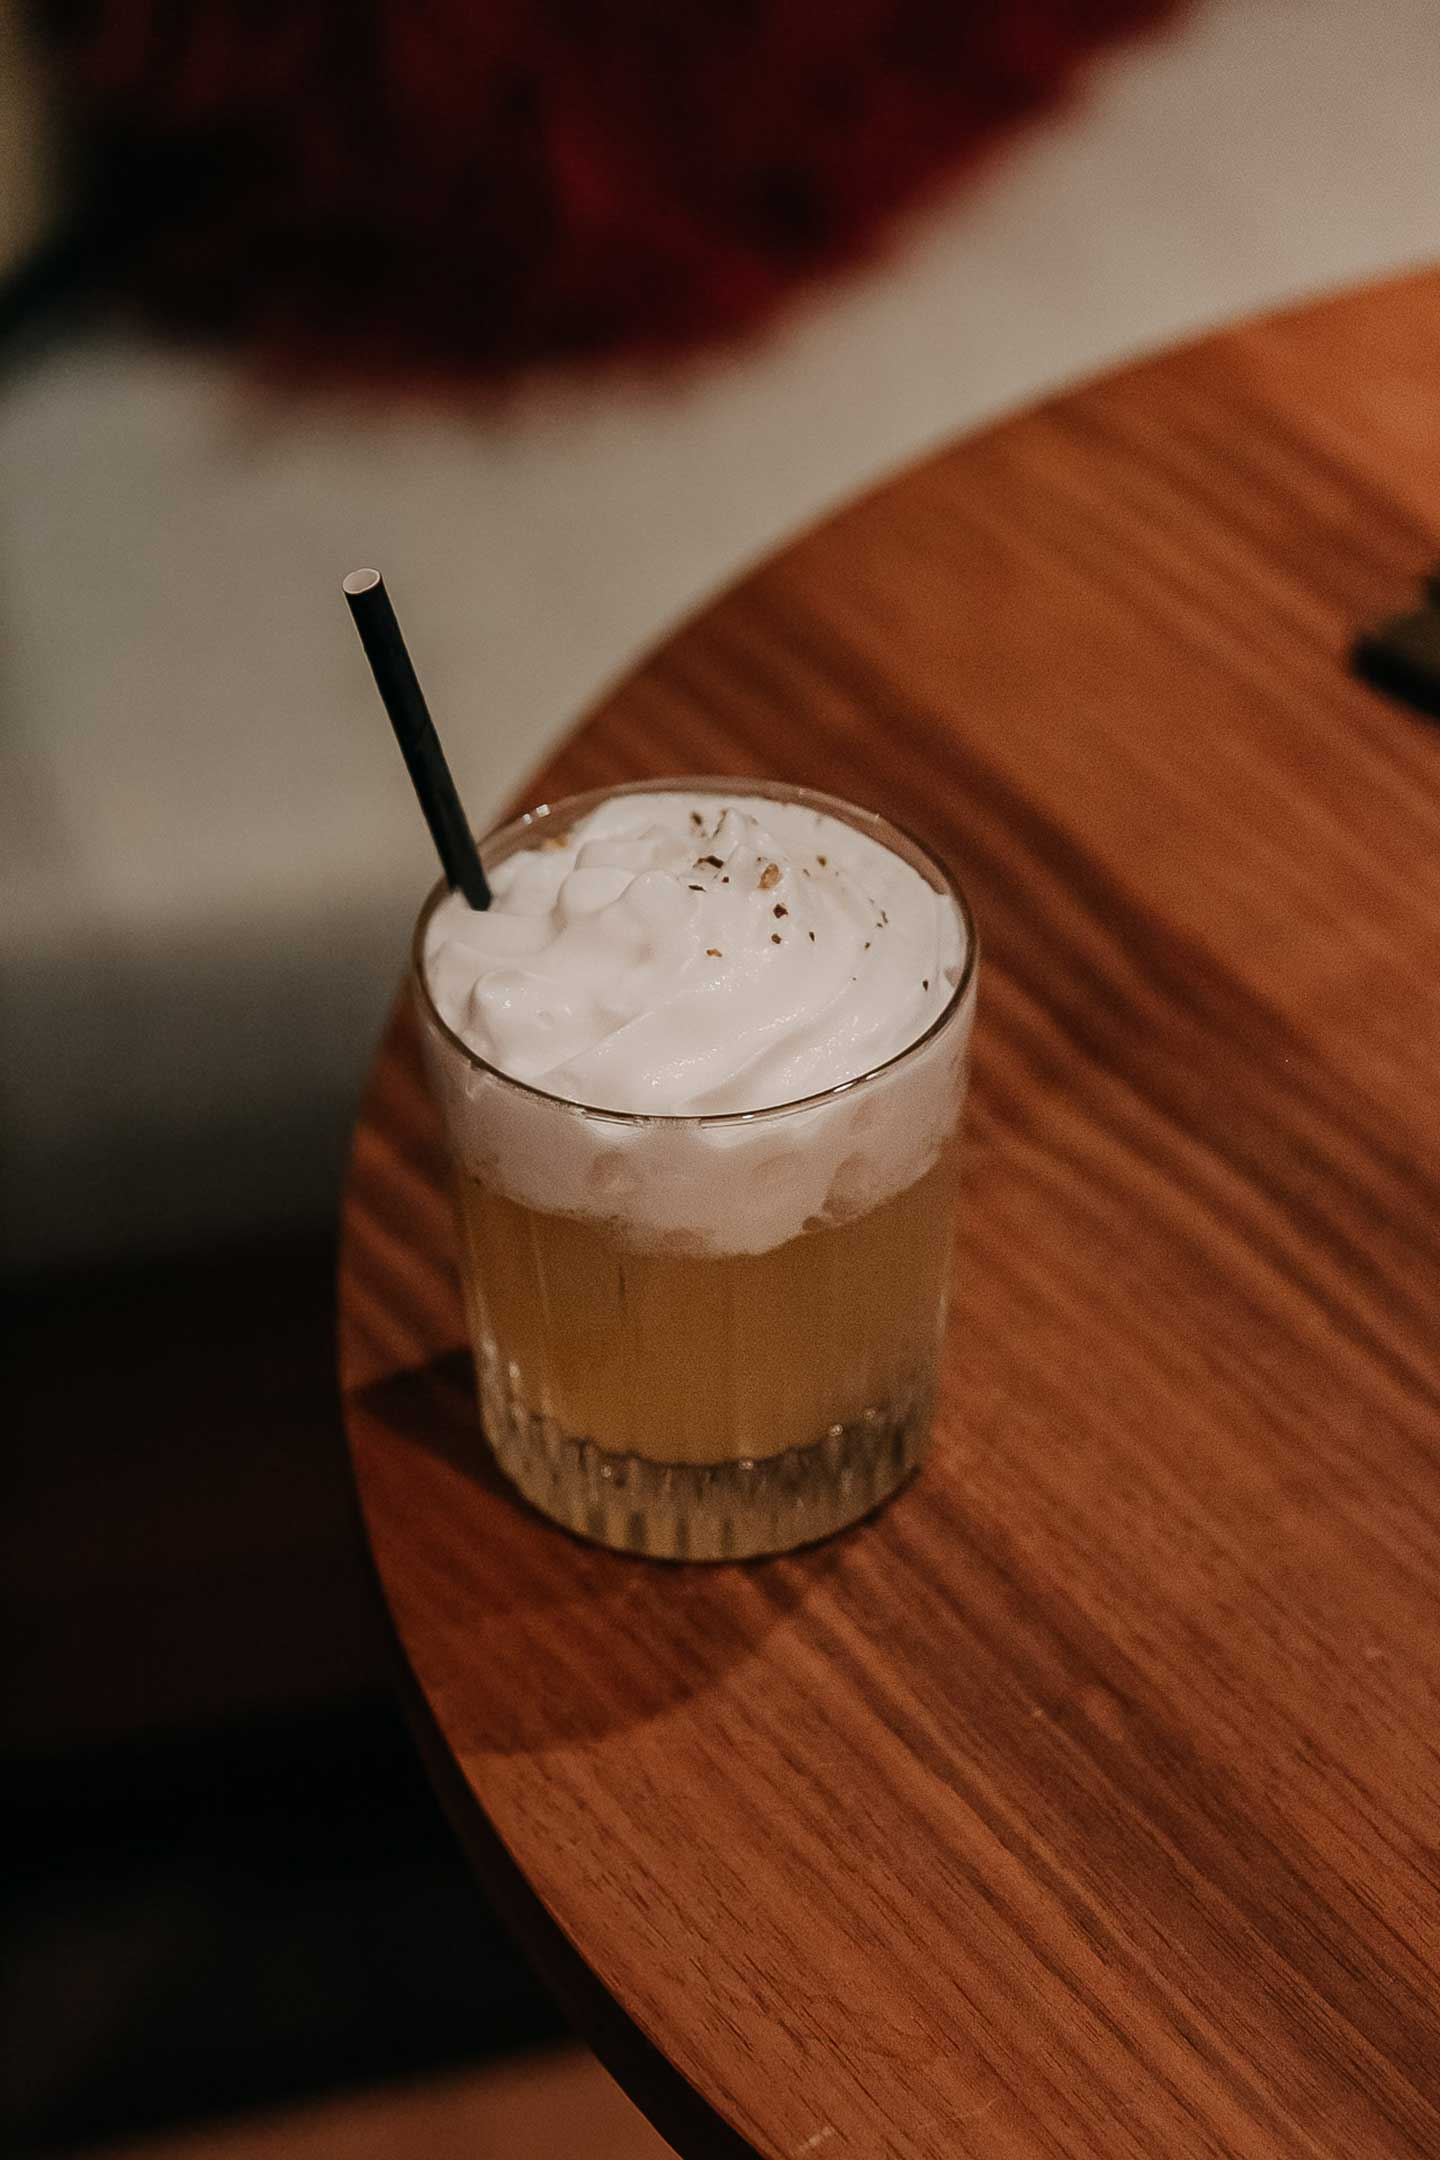 Cocktail whisky sour laid on a wooden table